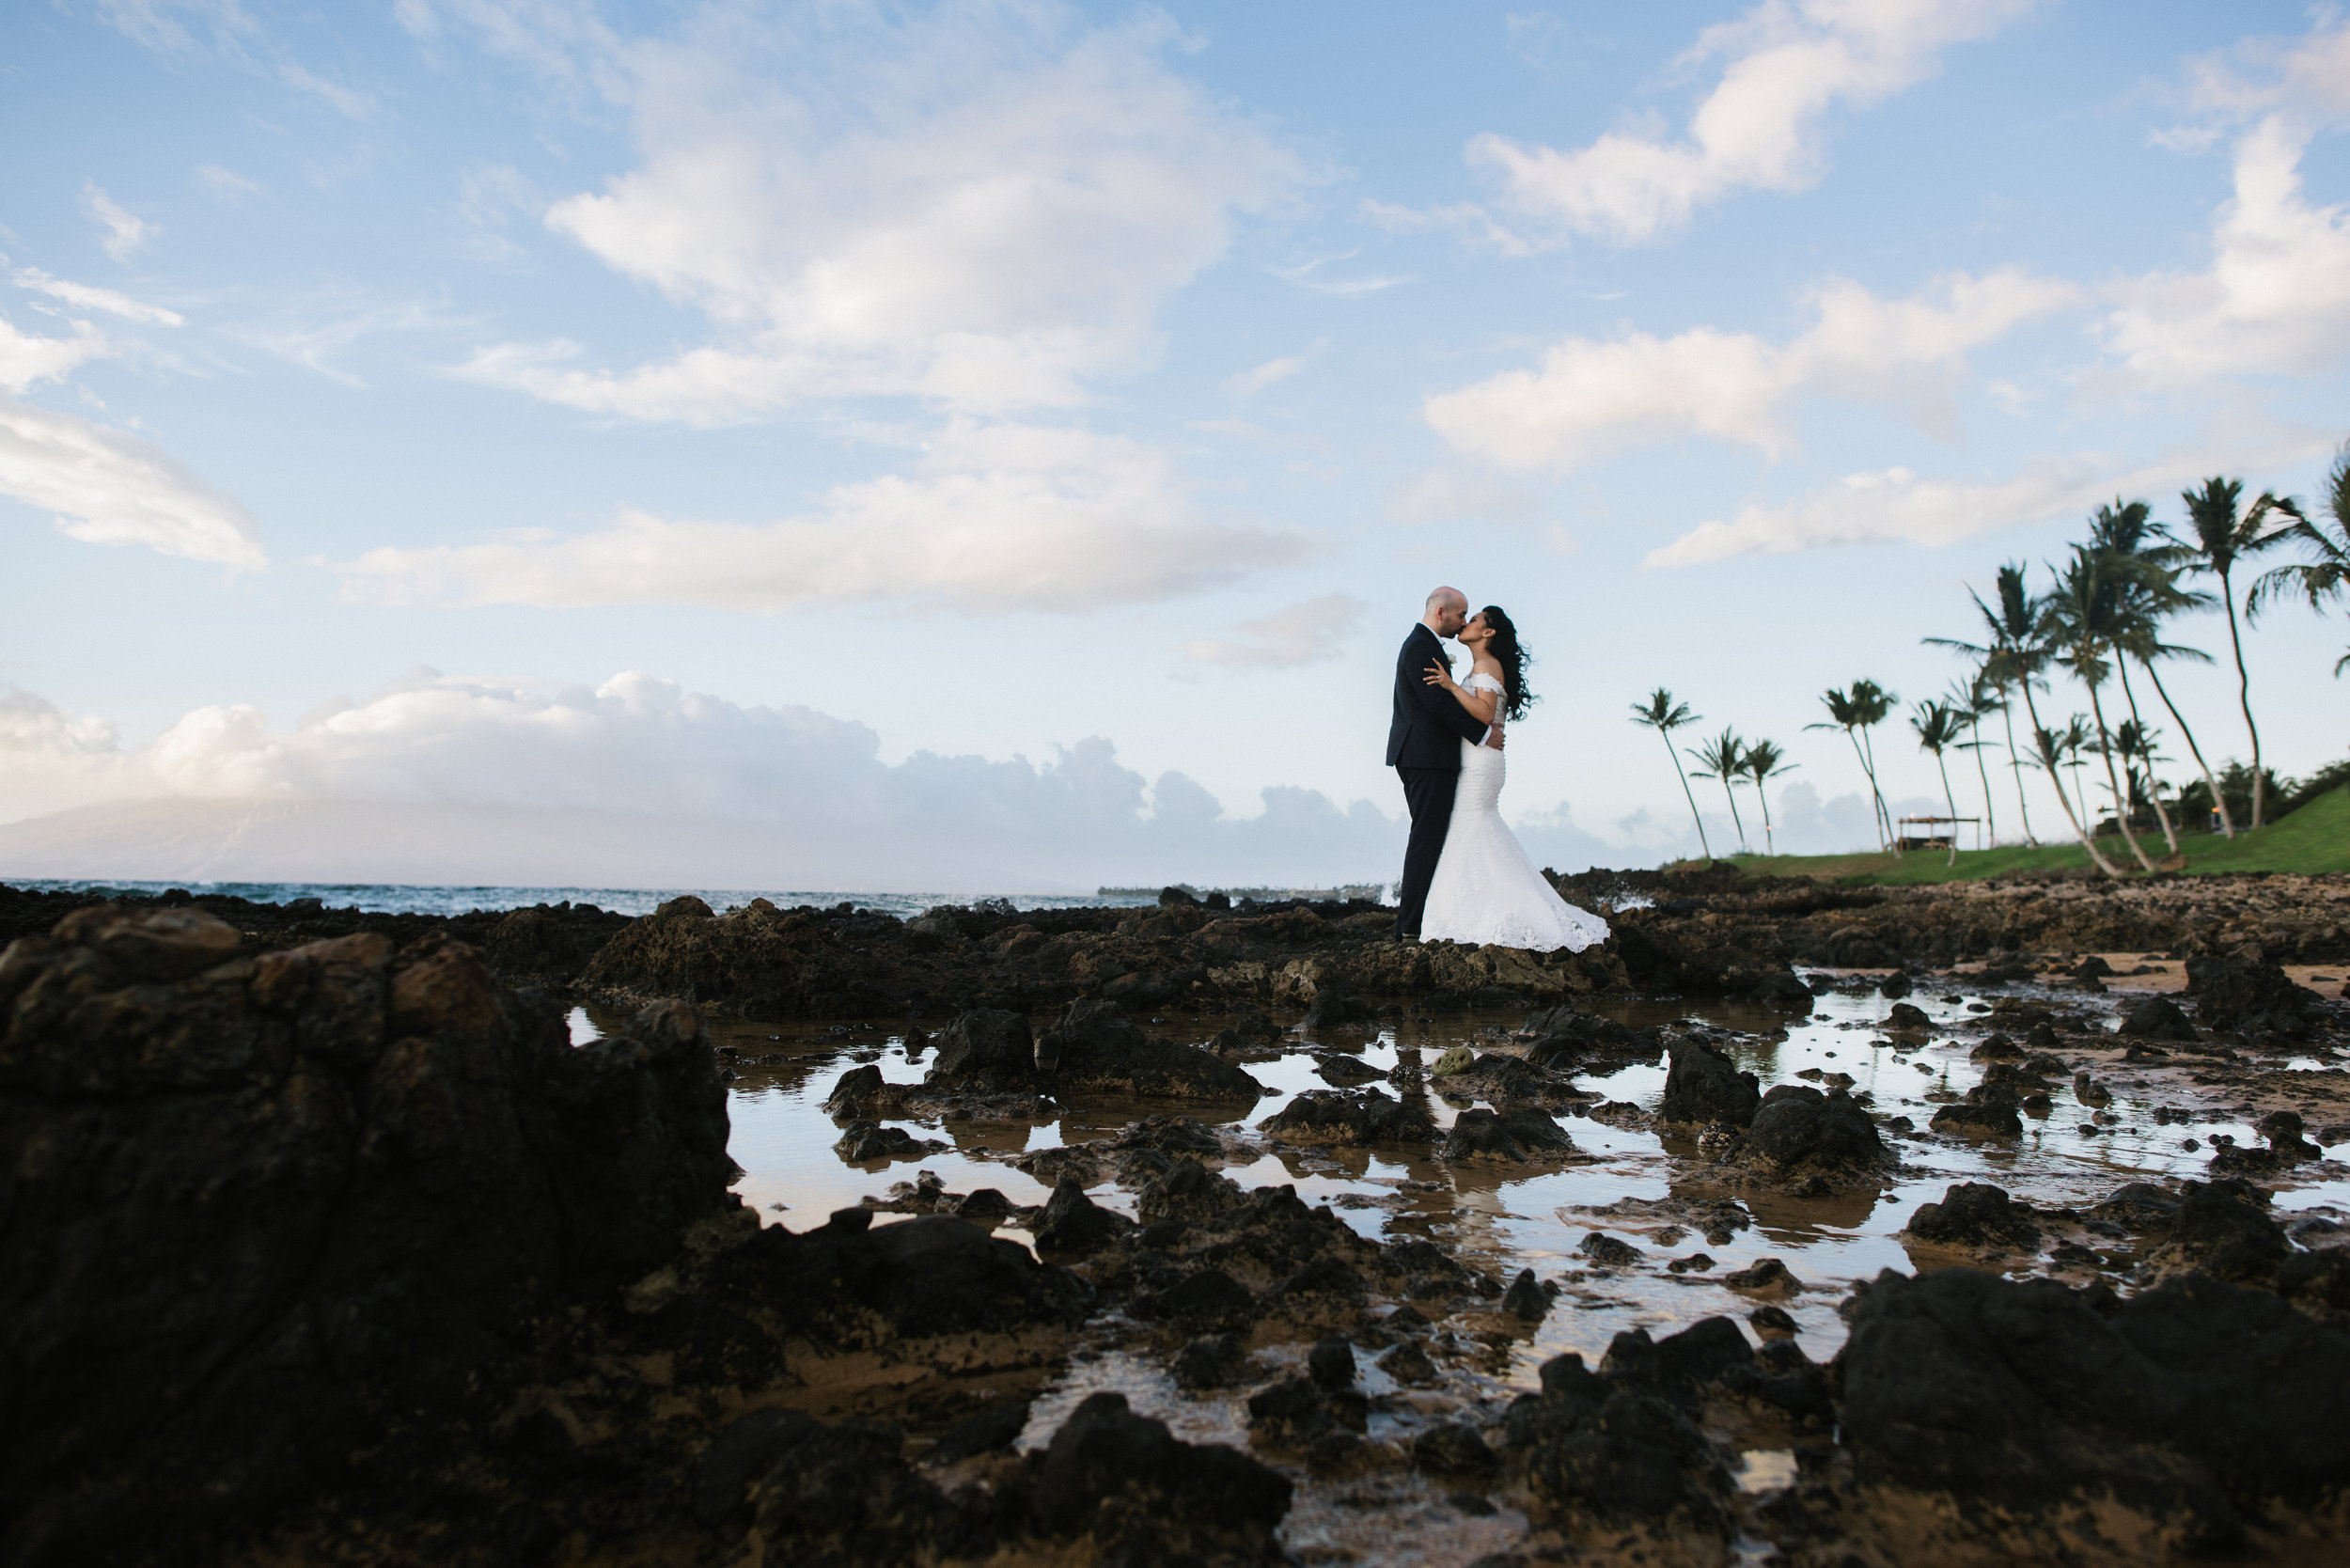 Maui Elopement Photographer in Kihei, Hawaii